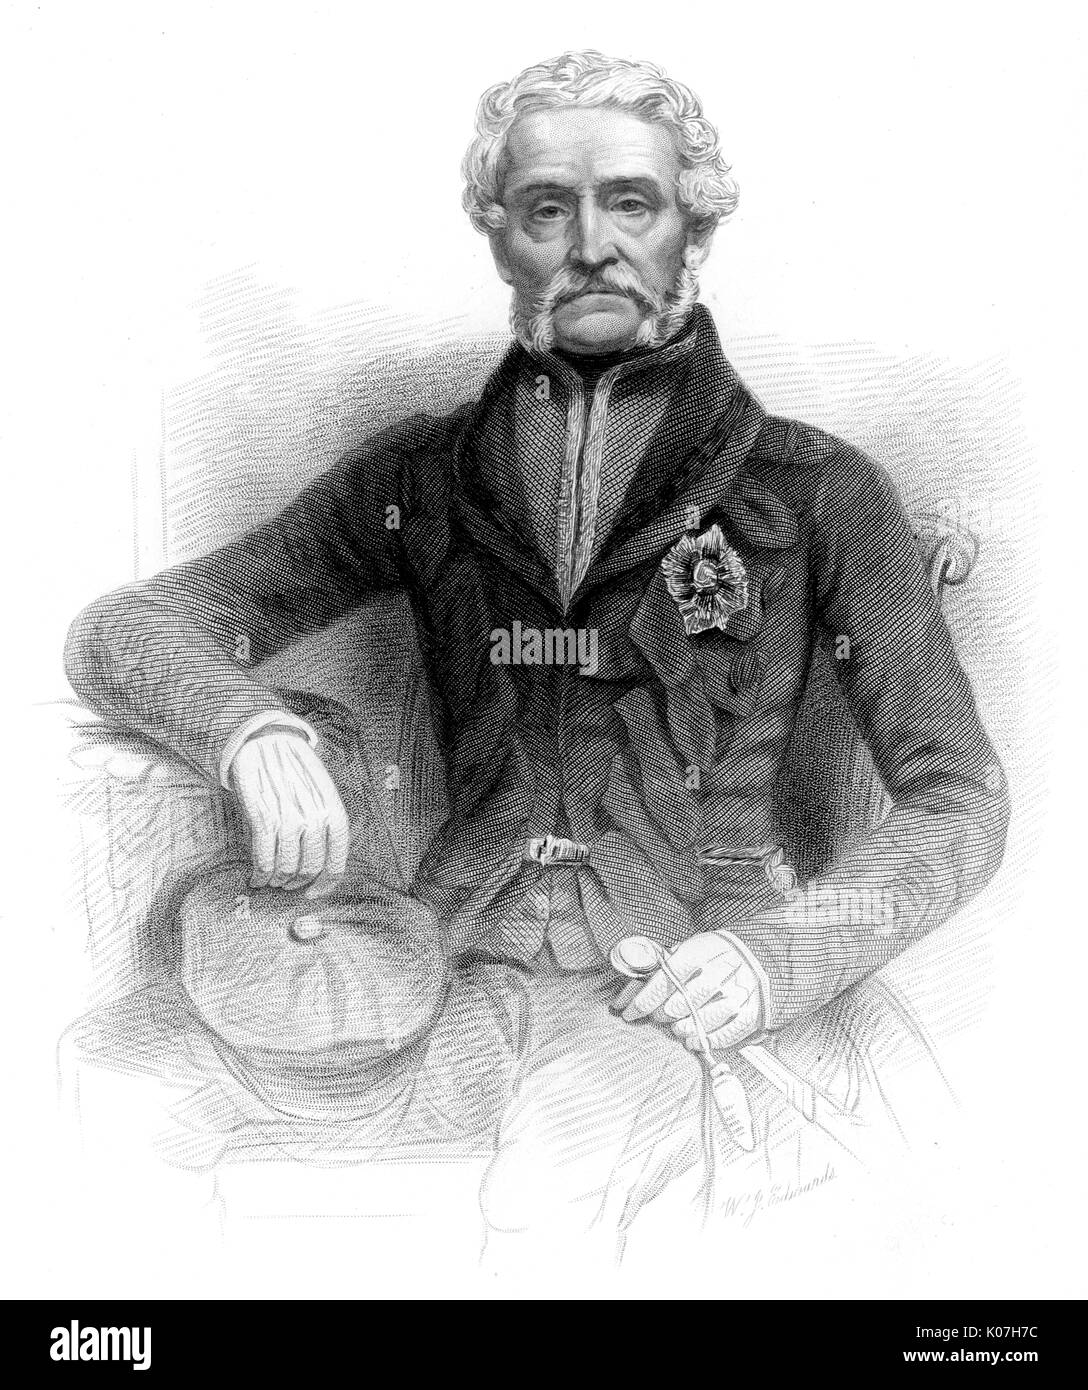 Sir Harry Smith (1787 - 1860) - soldier and  administrator whose arrogant  and insensitive policies, coupled with his incompetence, led to catastrophe for the Xhosa (Kaffirs)in South Africa     Date: - Stock Image